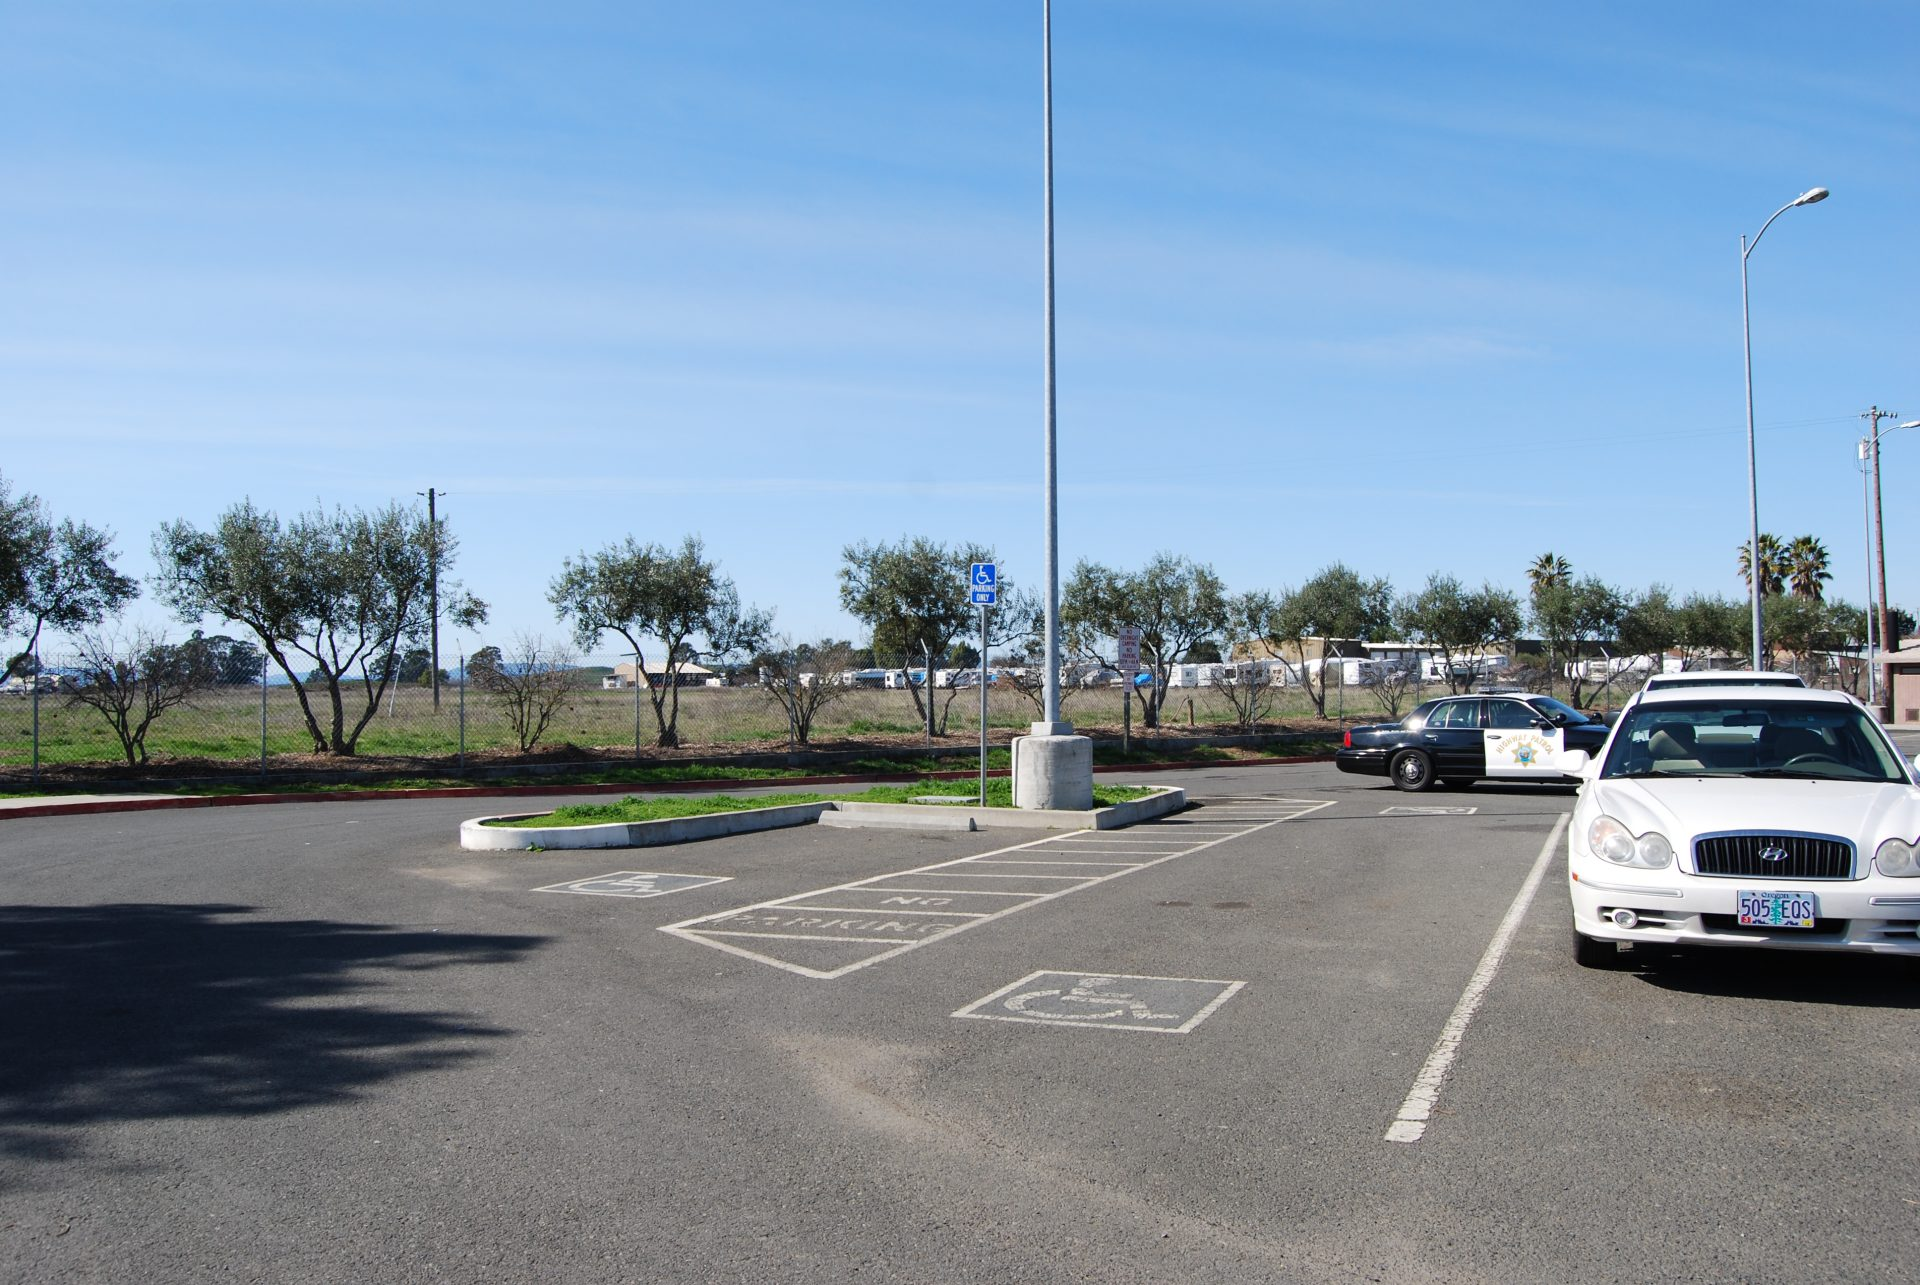 Paved parking lot with three handicap accessible spots